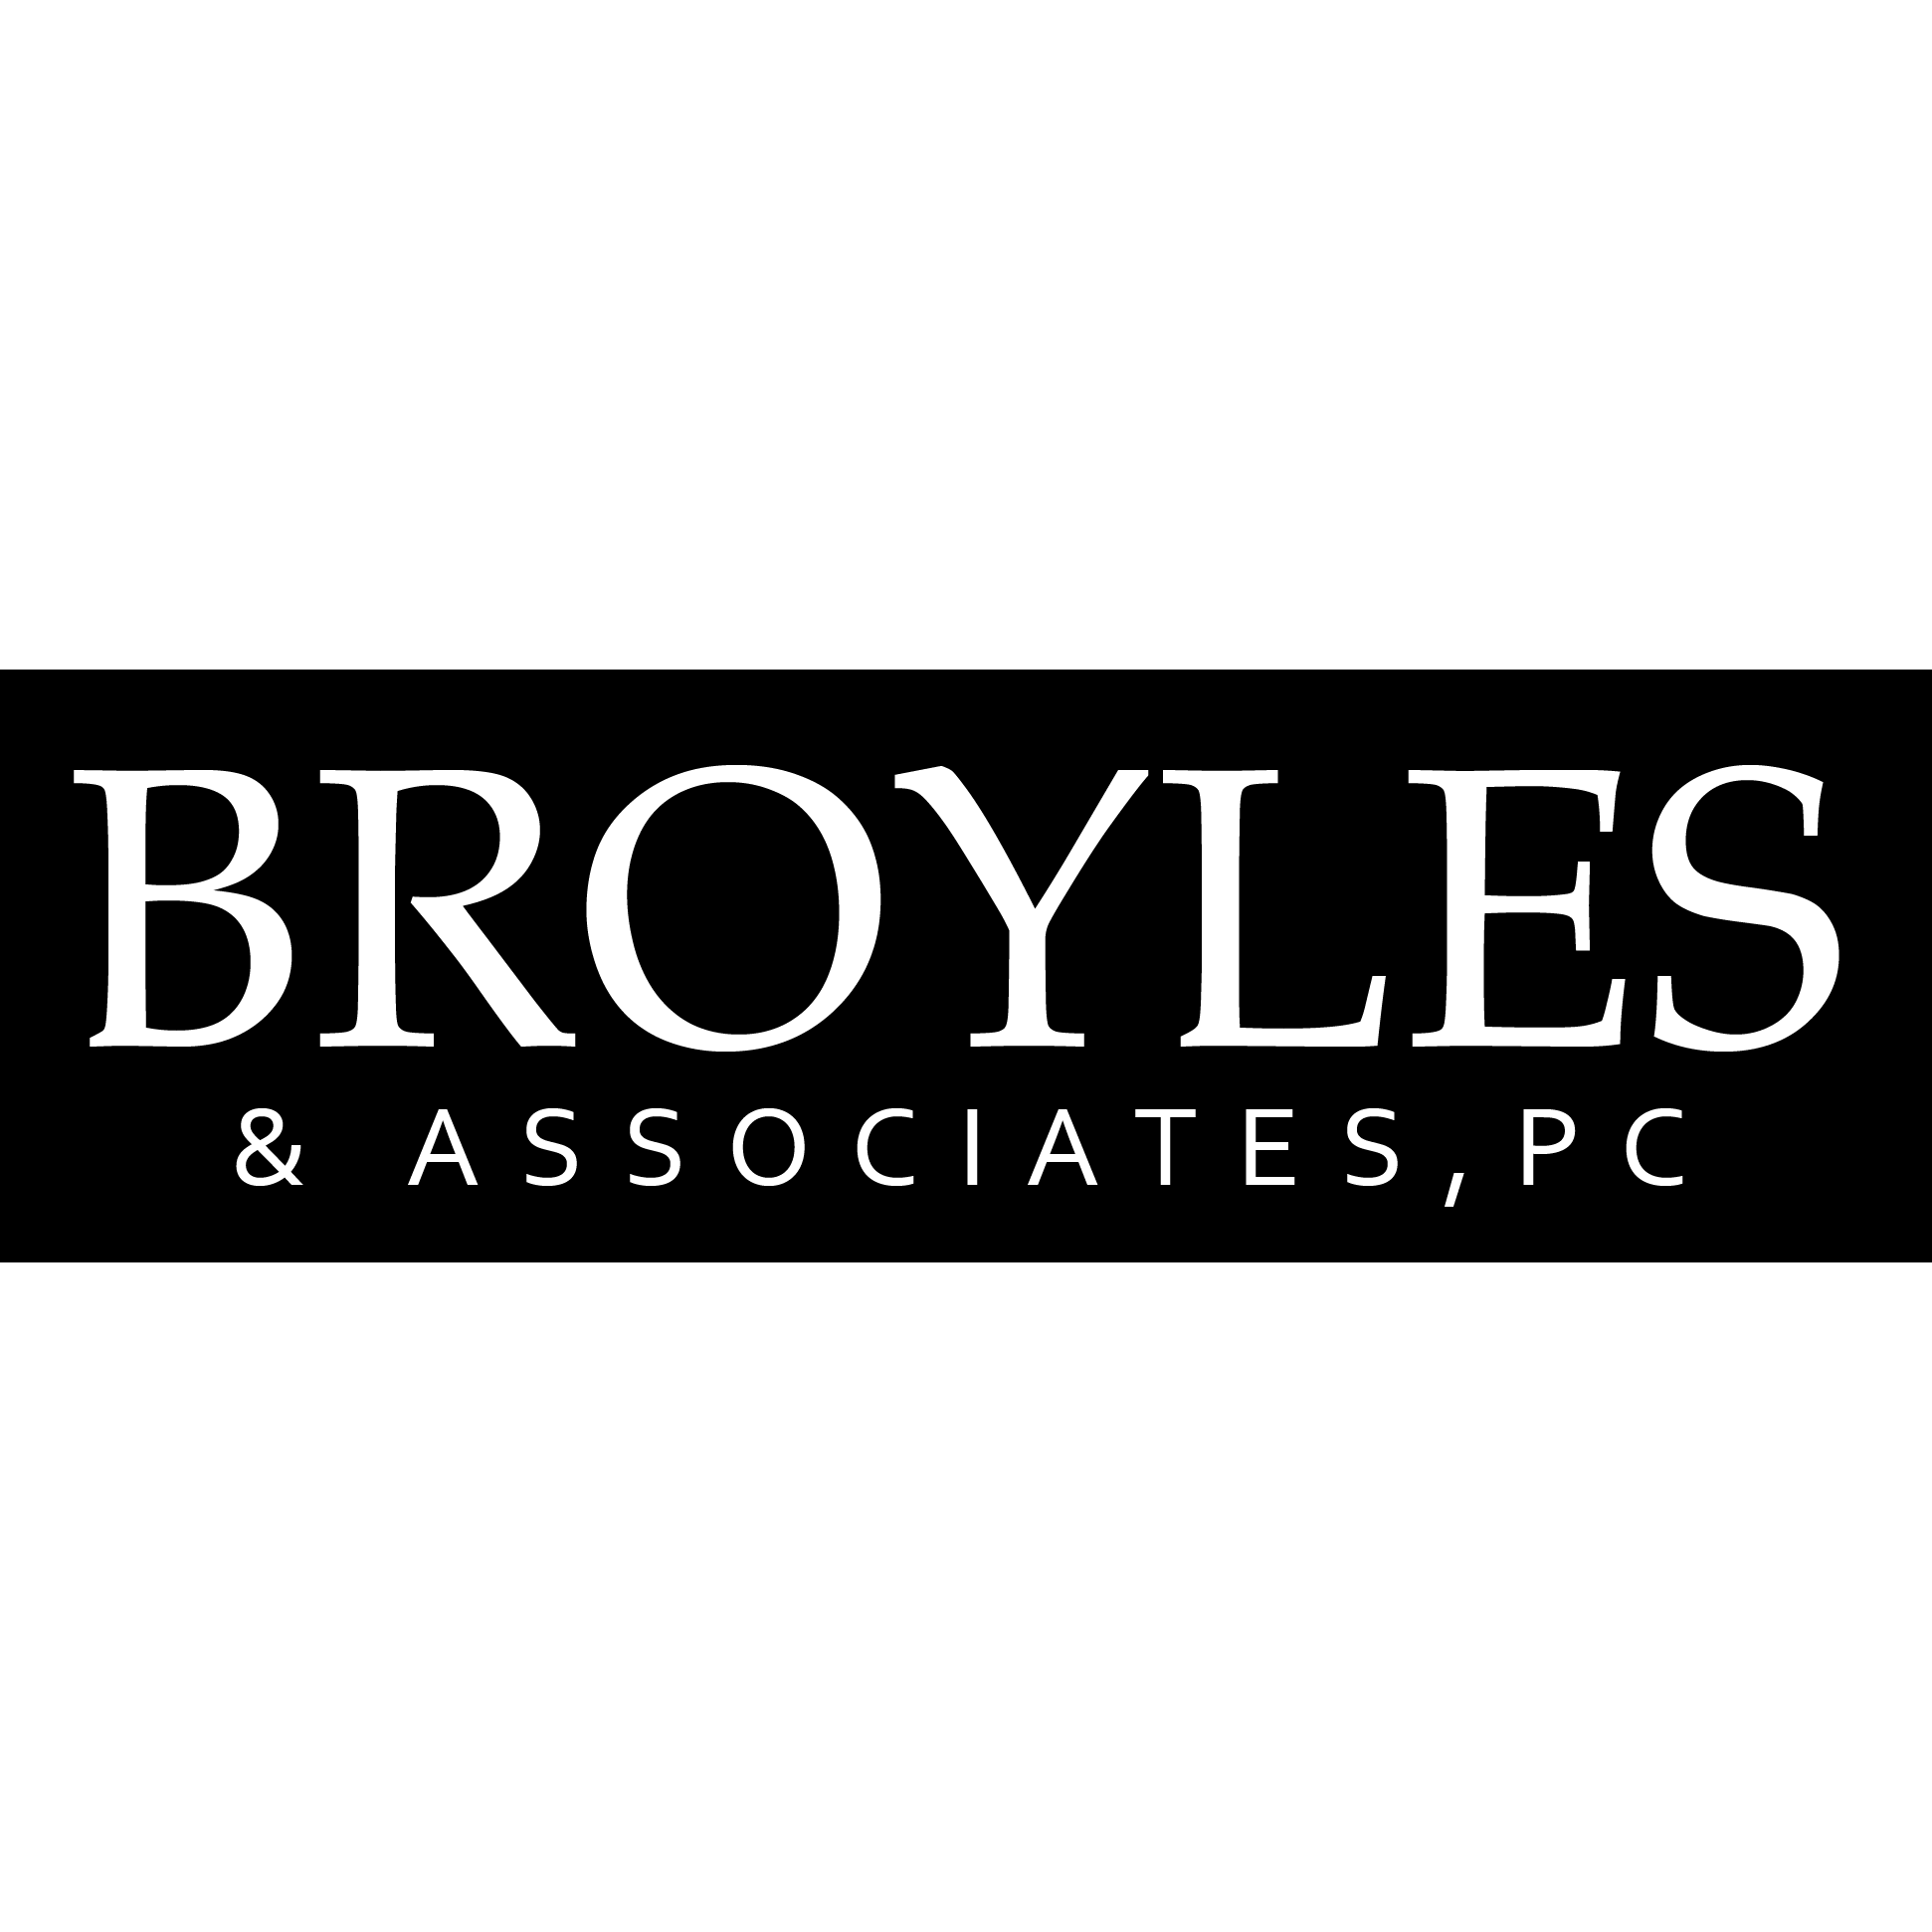 Broyles & Associates, PC - Bogart, GA 30622 - (606)524-3459 | ShowMeLocal.com